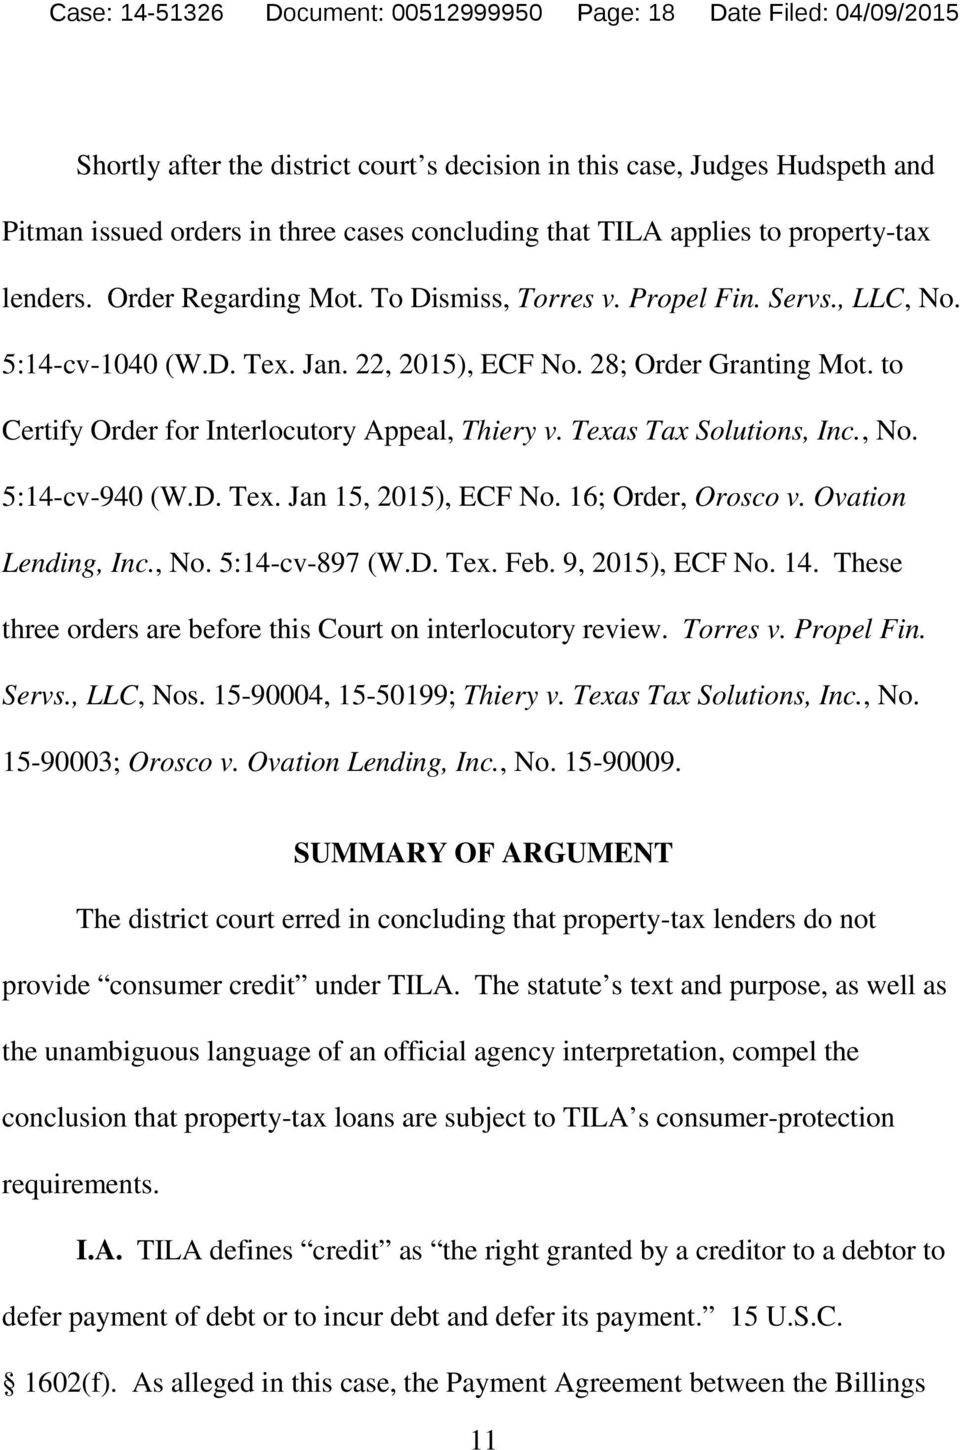 to Certify Order for Interlocutory Appeal, Thiery v. Texas Tax Solutions, Inc., No. 5:14-cv-940 (W.D. Tex. Jan 15, 2015), ECF No. 16; Order, Orosco v. Ovation Lending, Inc., No. 5:14-cv-897 (W.D. Tex. Feb.